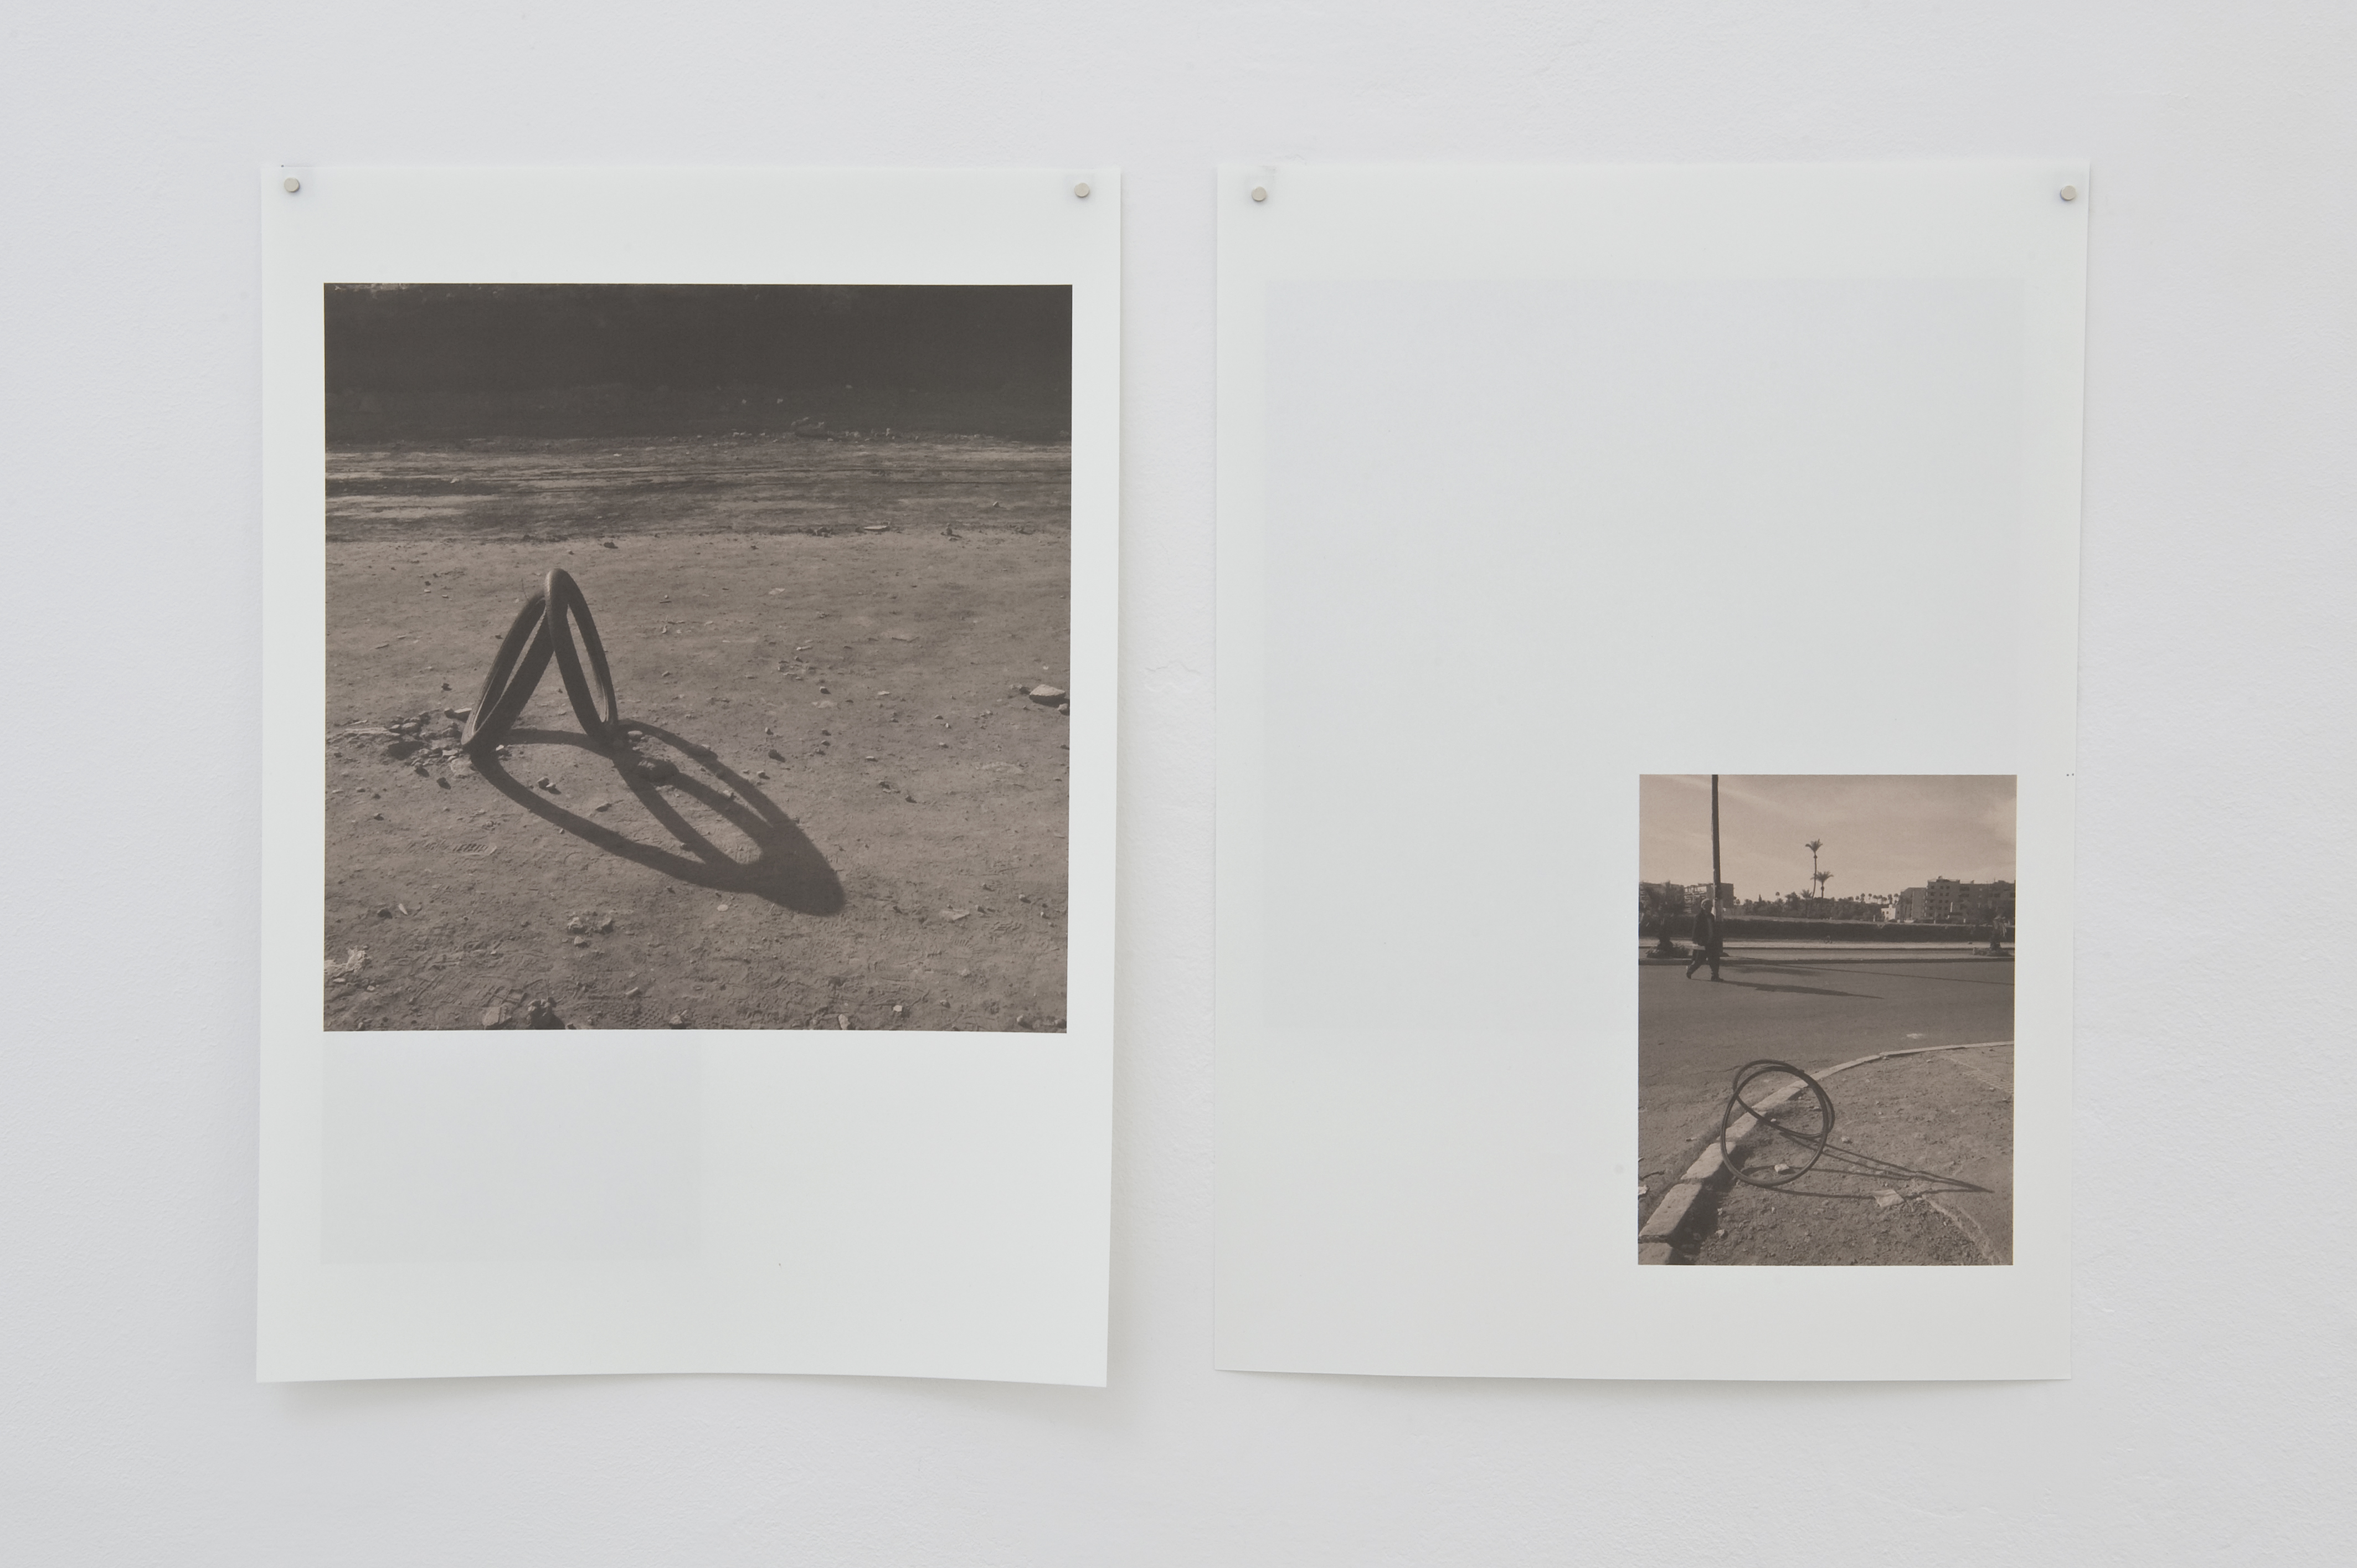 Objects Exist Independently of Human Perception, 2015 |  | ProjecteSD